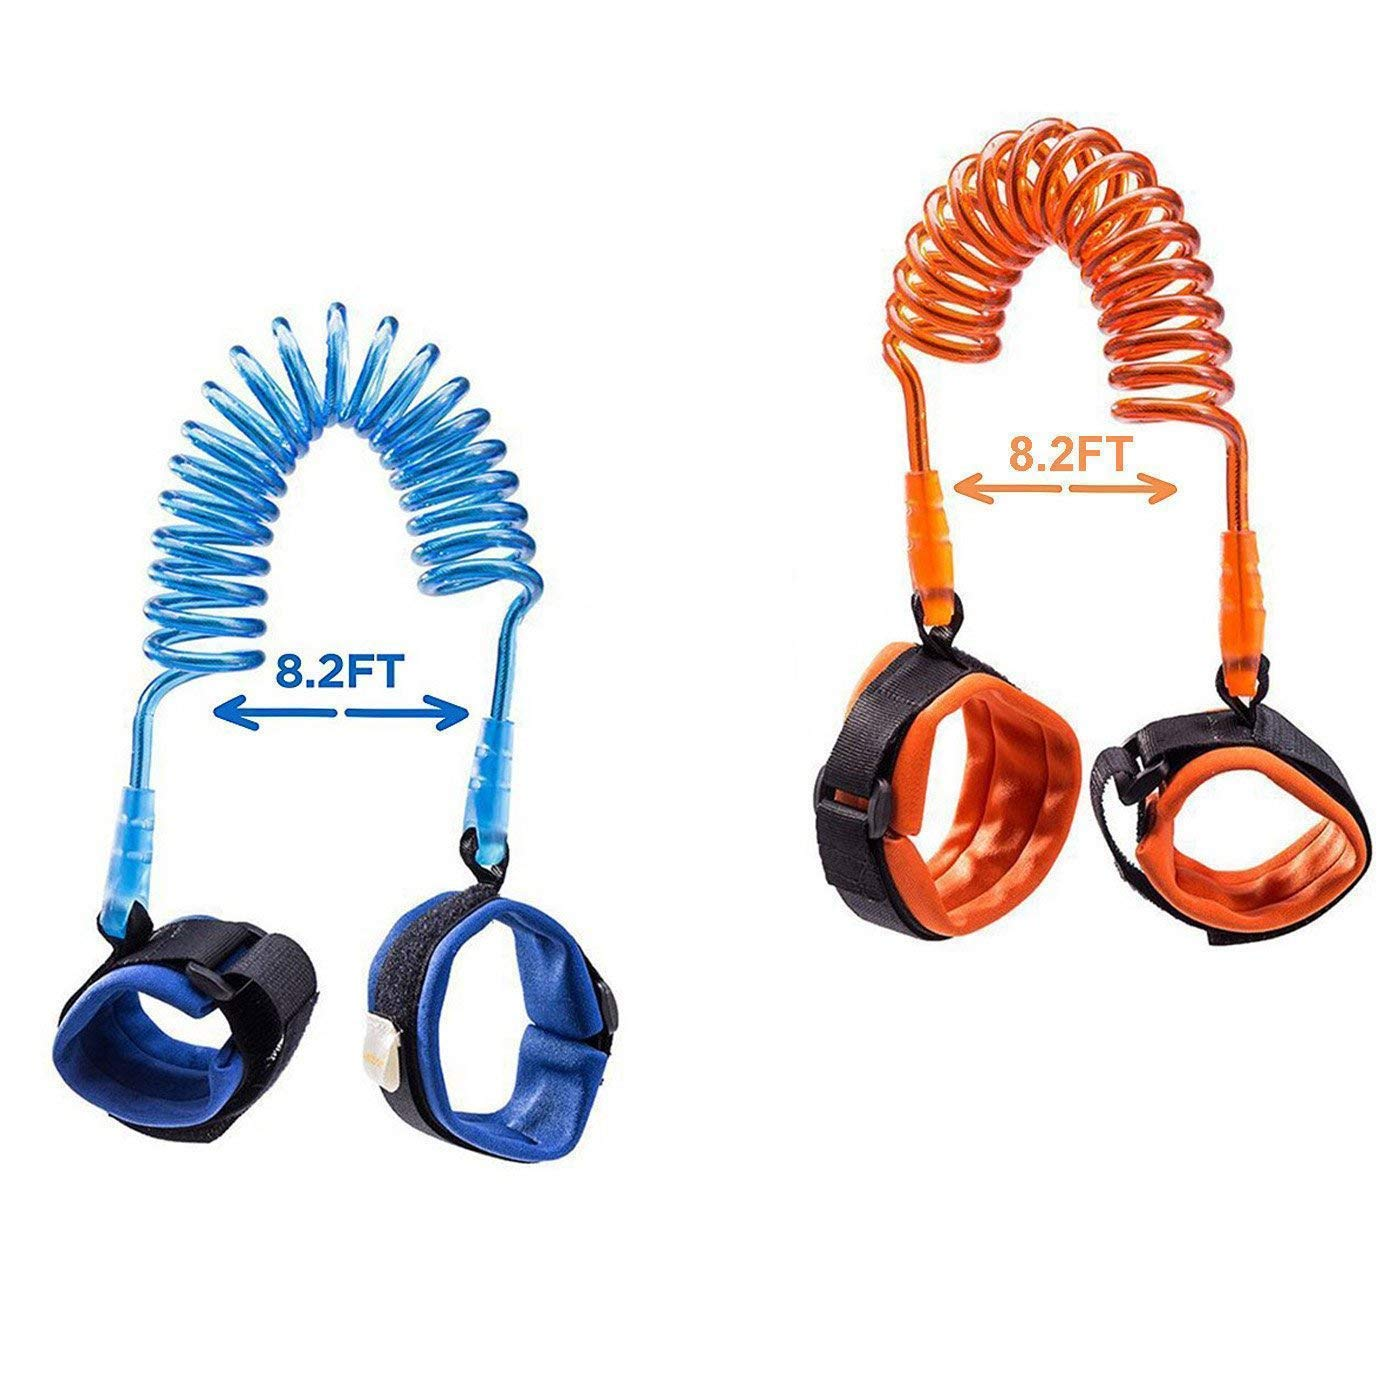 [2 Pack] Toddler Harness Walking Leash- Child Anti Lost Wrist Link - Child Safety Harness - 2.5M Orange + 2.5M Blue- Child Safety Wrist Strap HoLeis